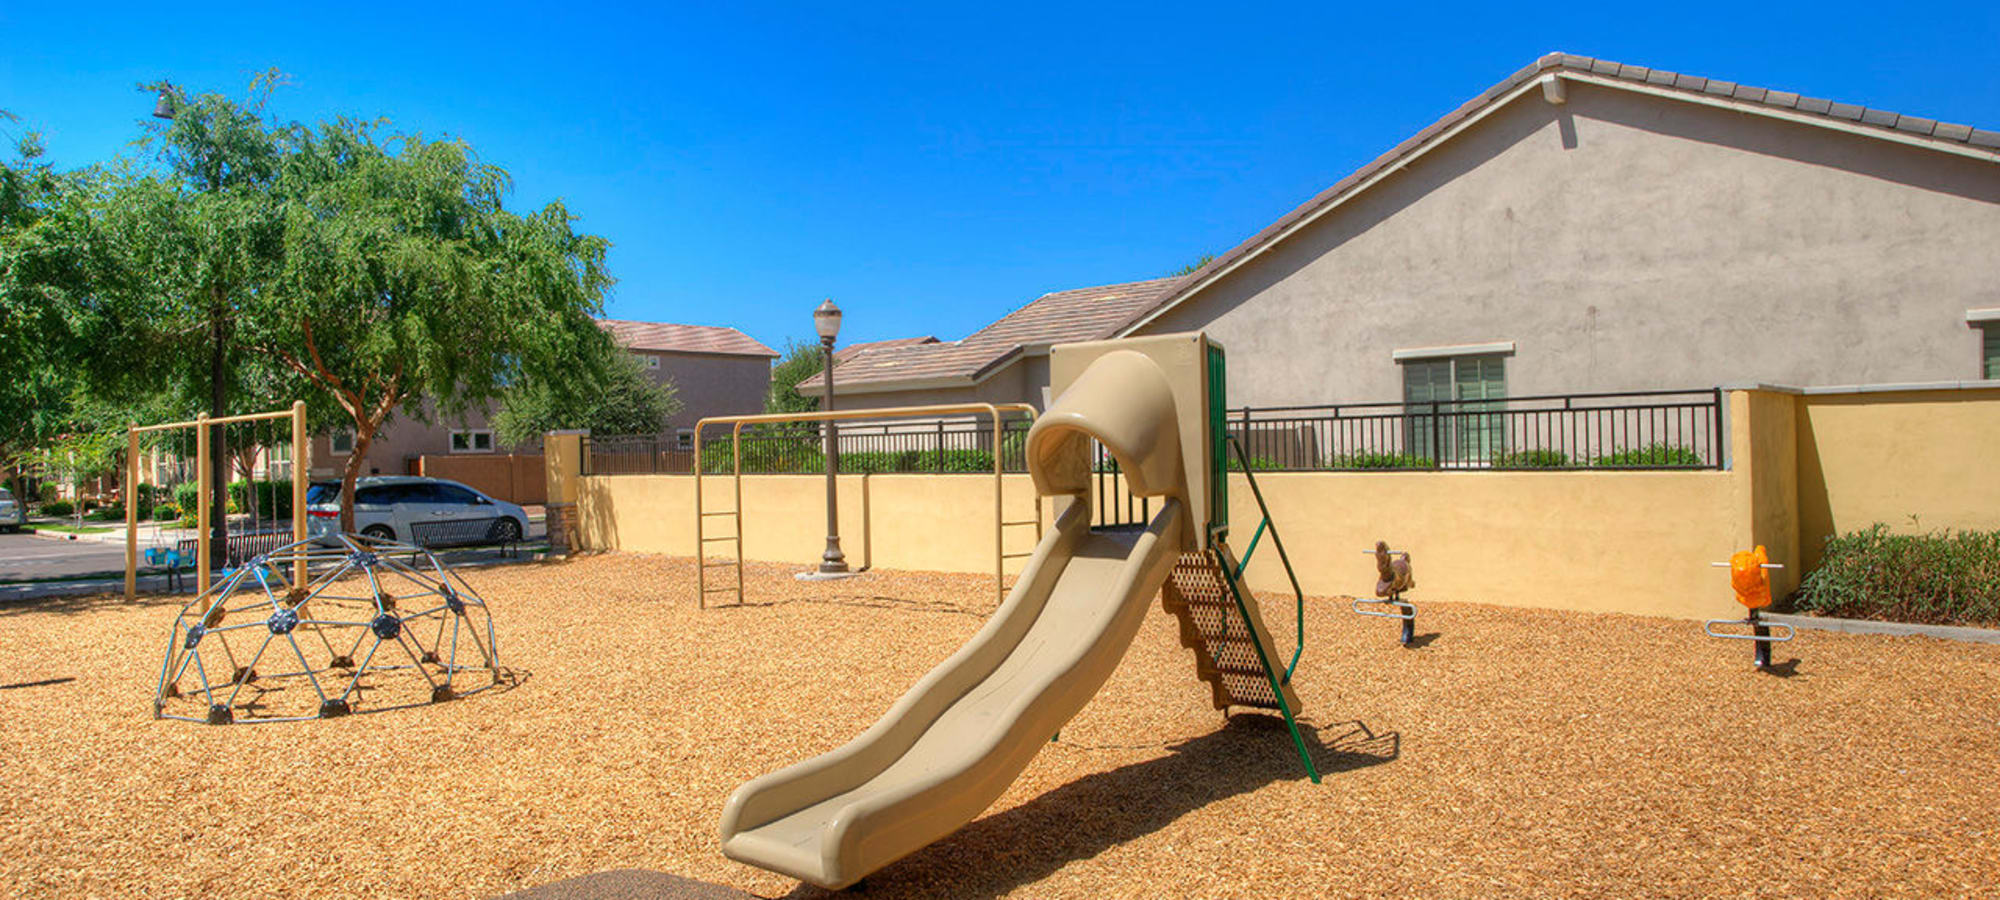 Children's slide in the playground at BB Living at Higley Park in Gilbert, Arizona